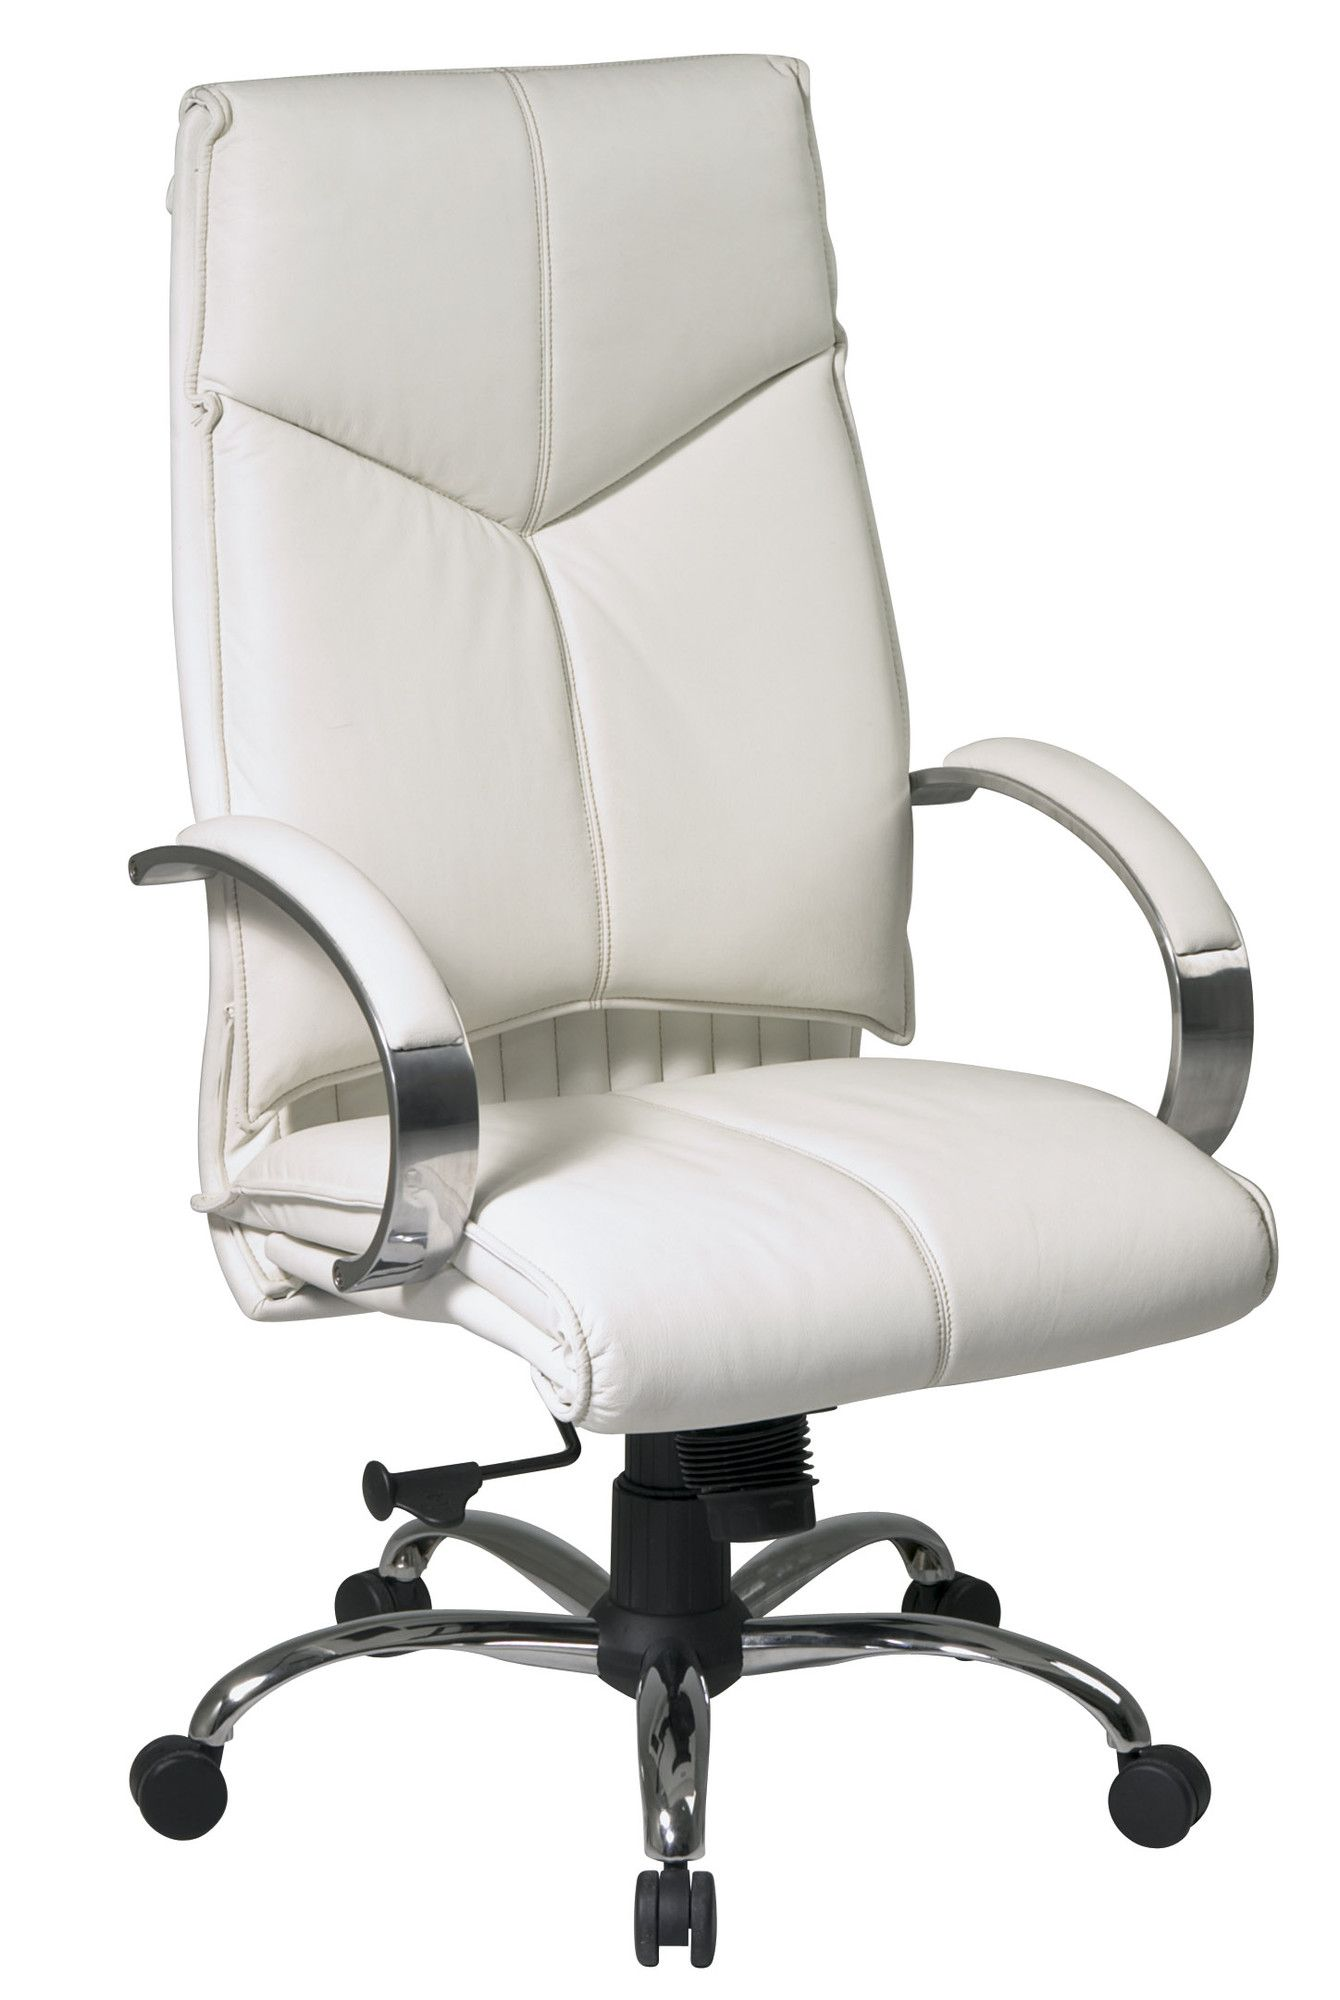 Office Star Deluxe HighBack Executive Leather Office